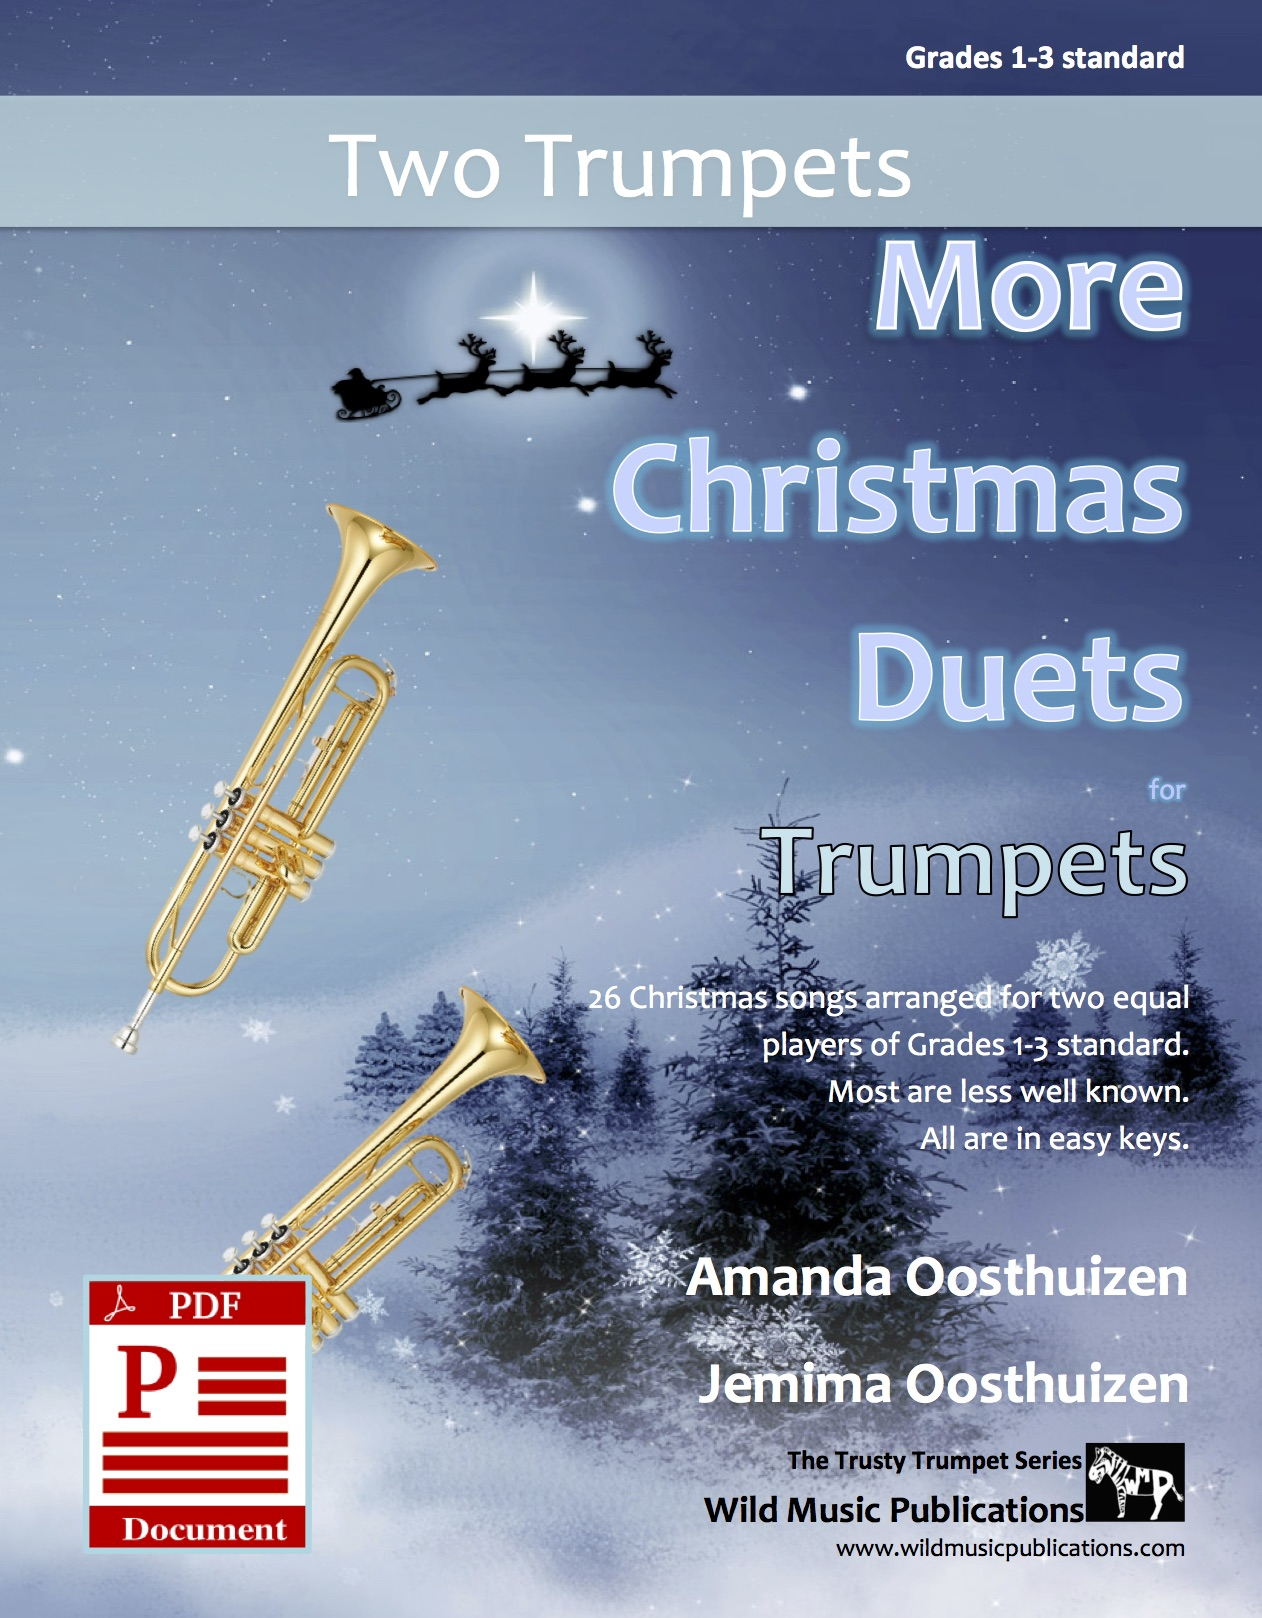 More Christmas Duets for Violas Download